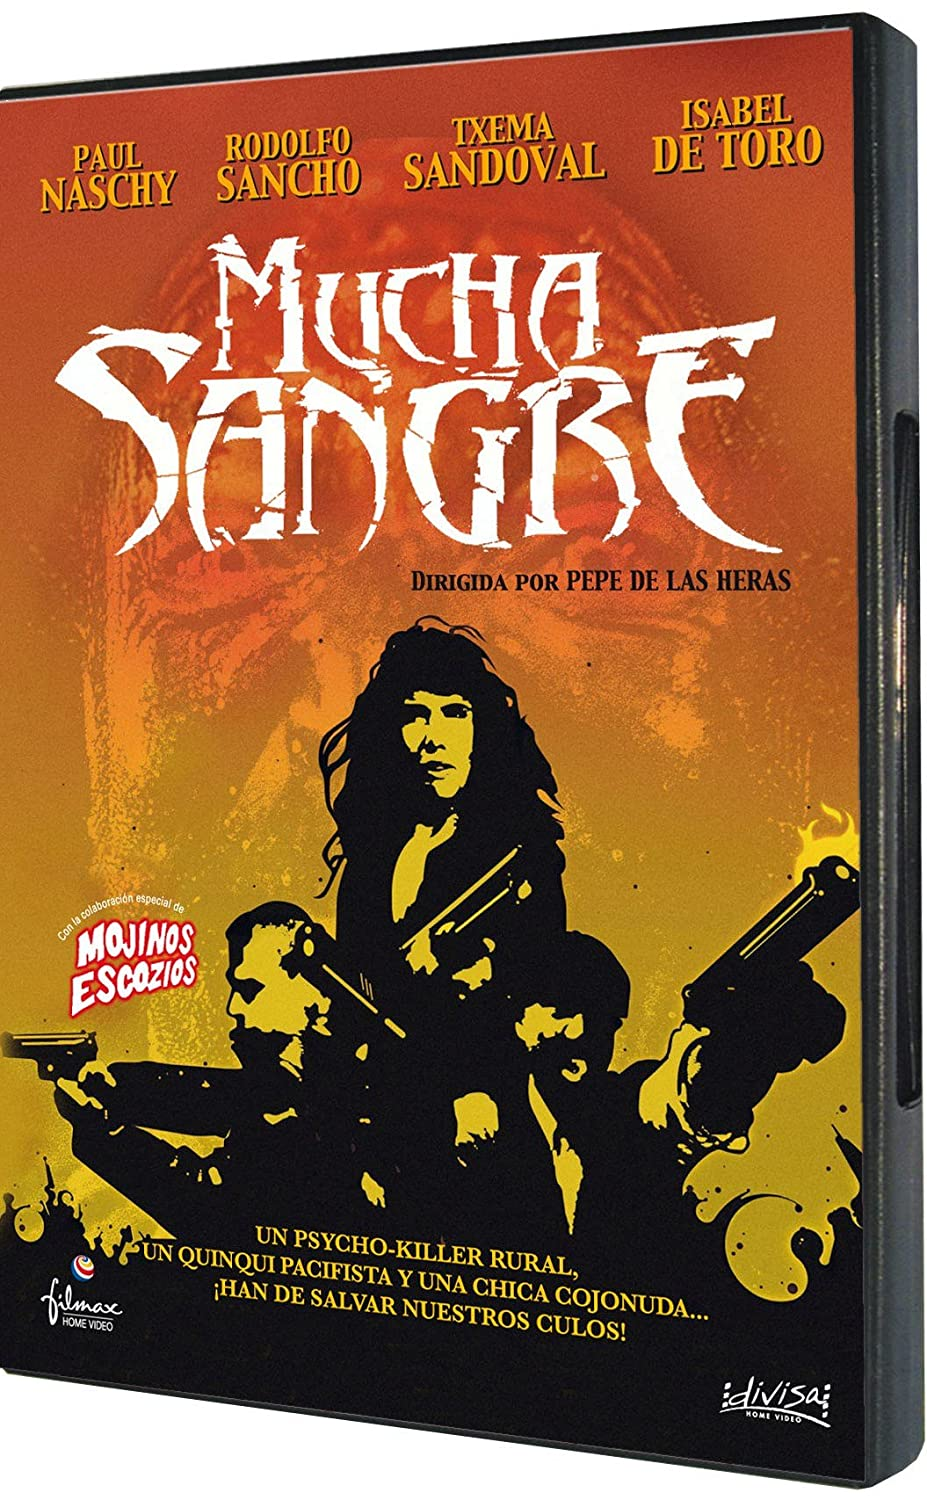 Amazon.com: Mucha Sangre -2002- Spanish Import - Region 2 - PAL: Movies & TV